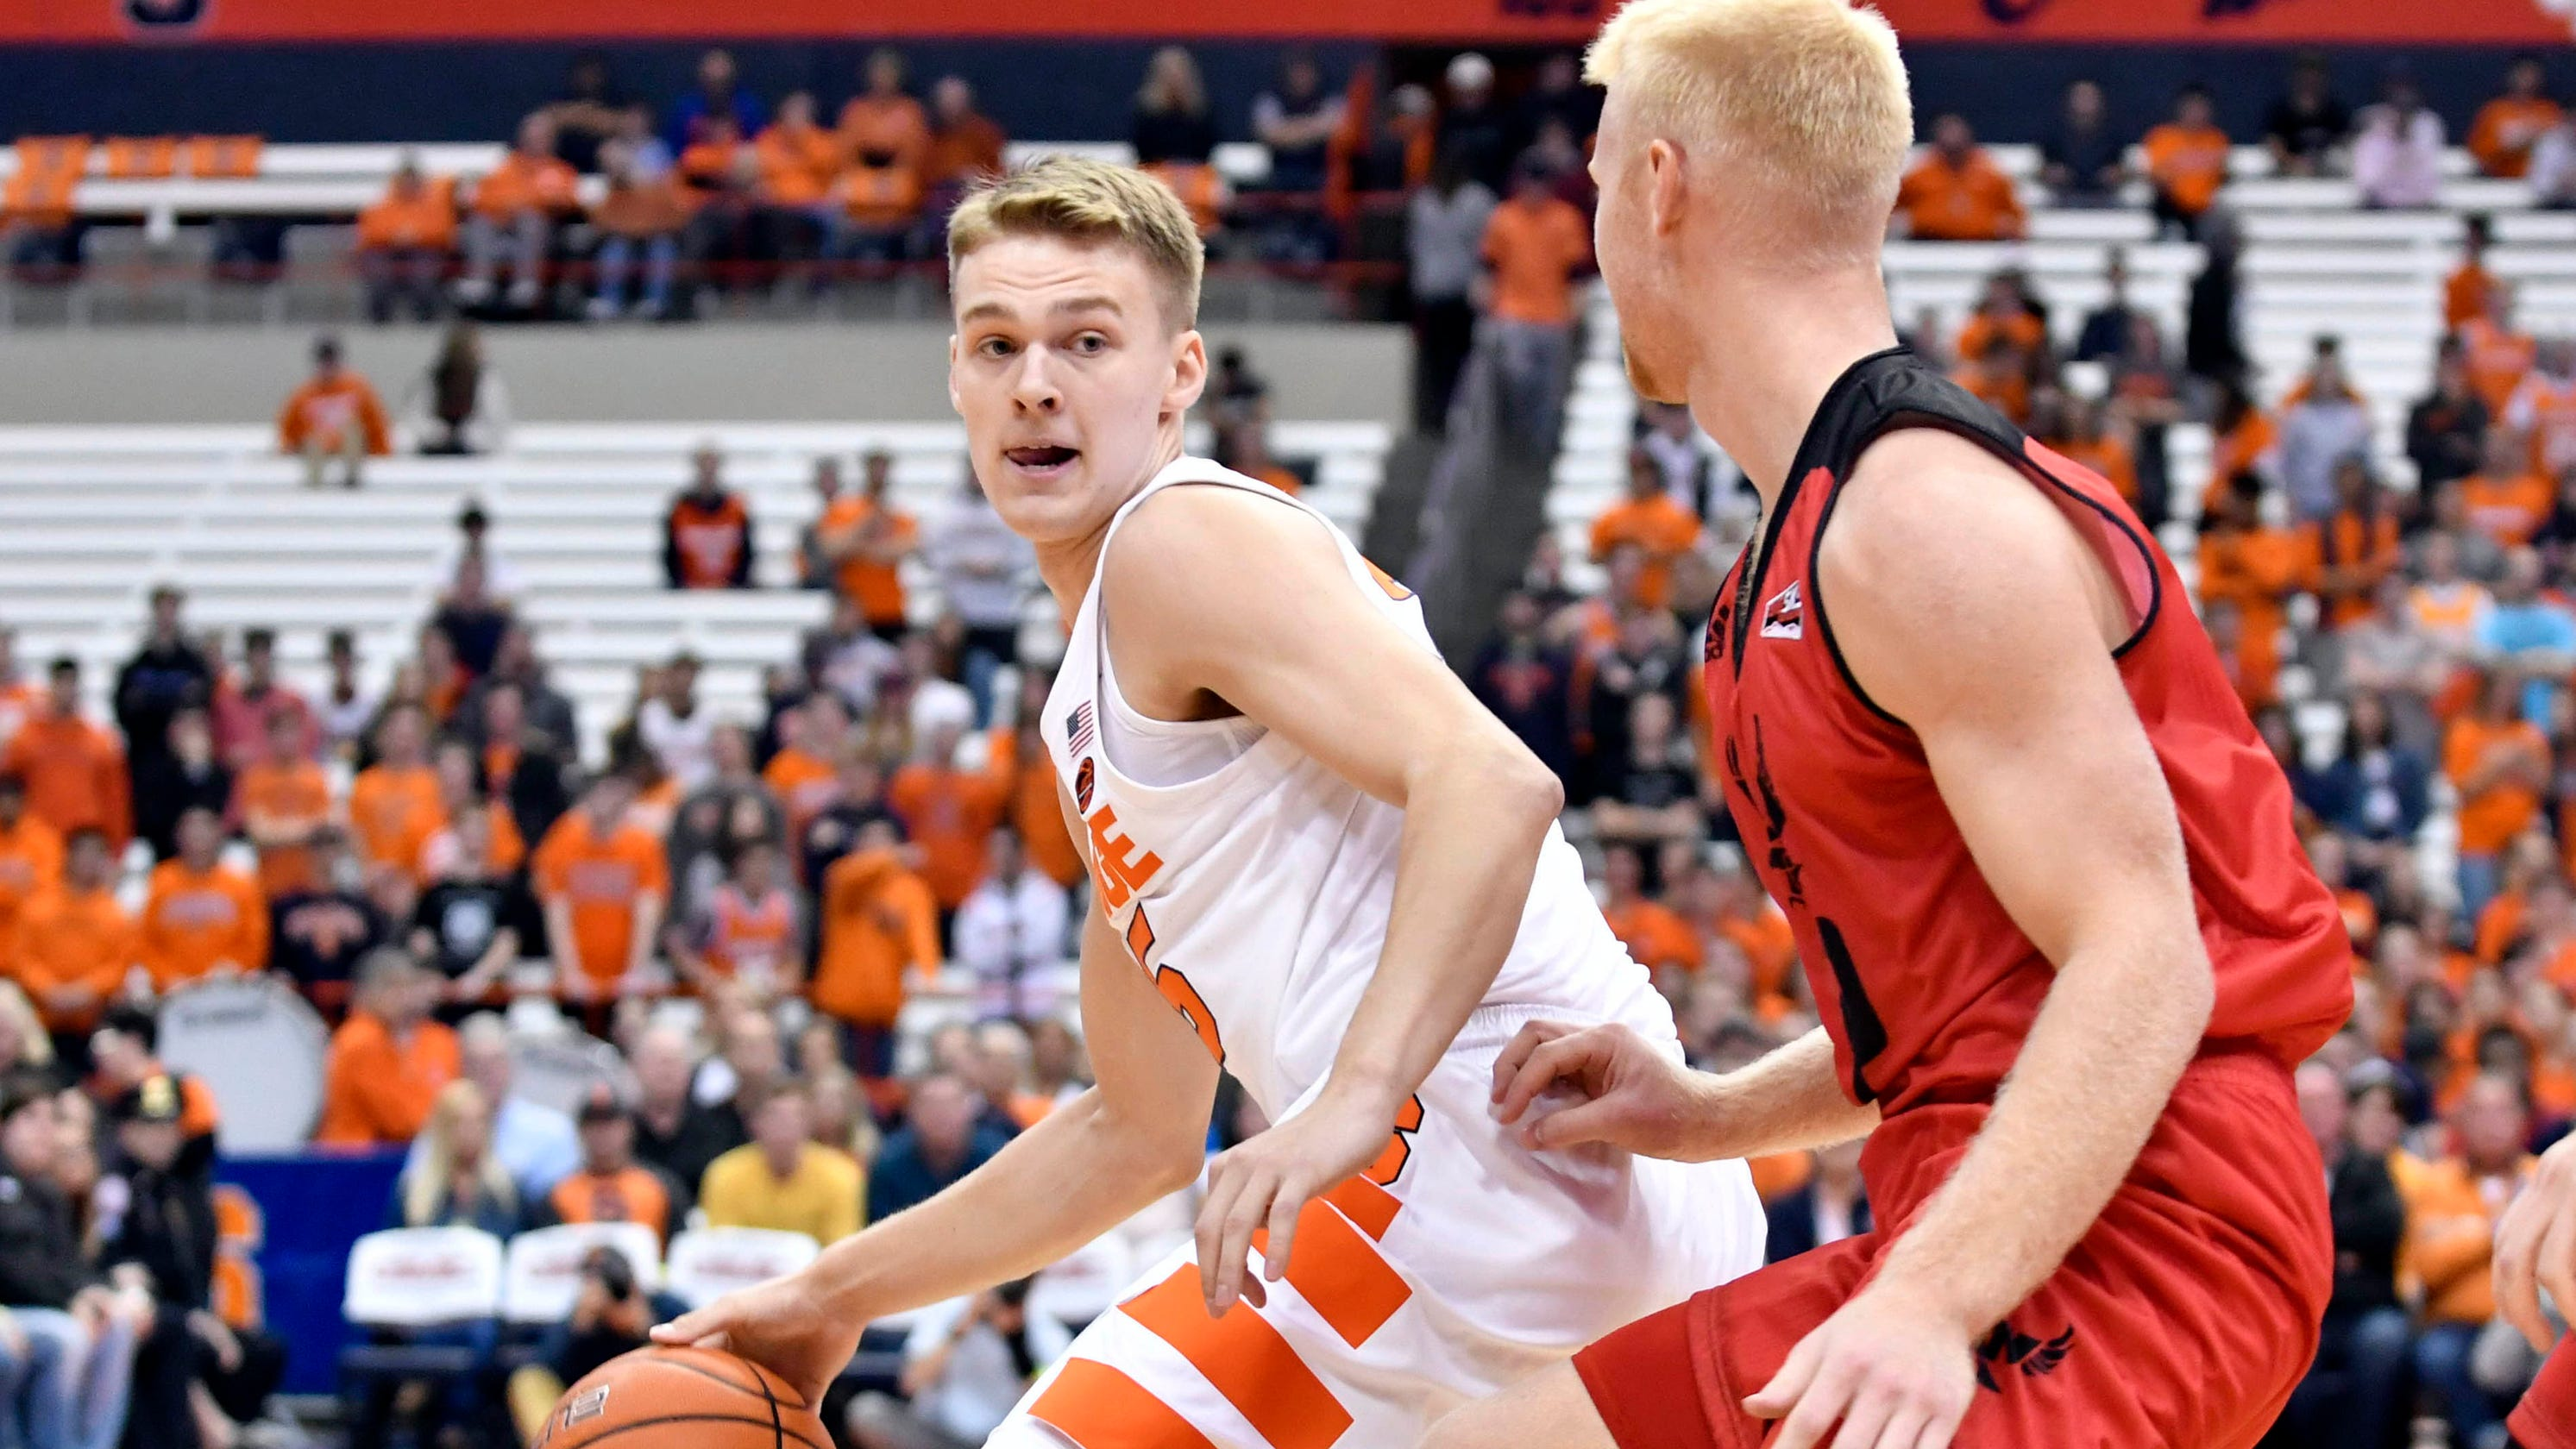 sports shoes a8df1 846a3 What is Syracuse basketball player Buddy Boeheim's real name?